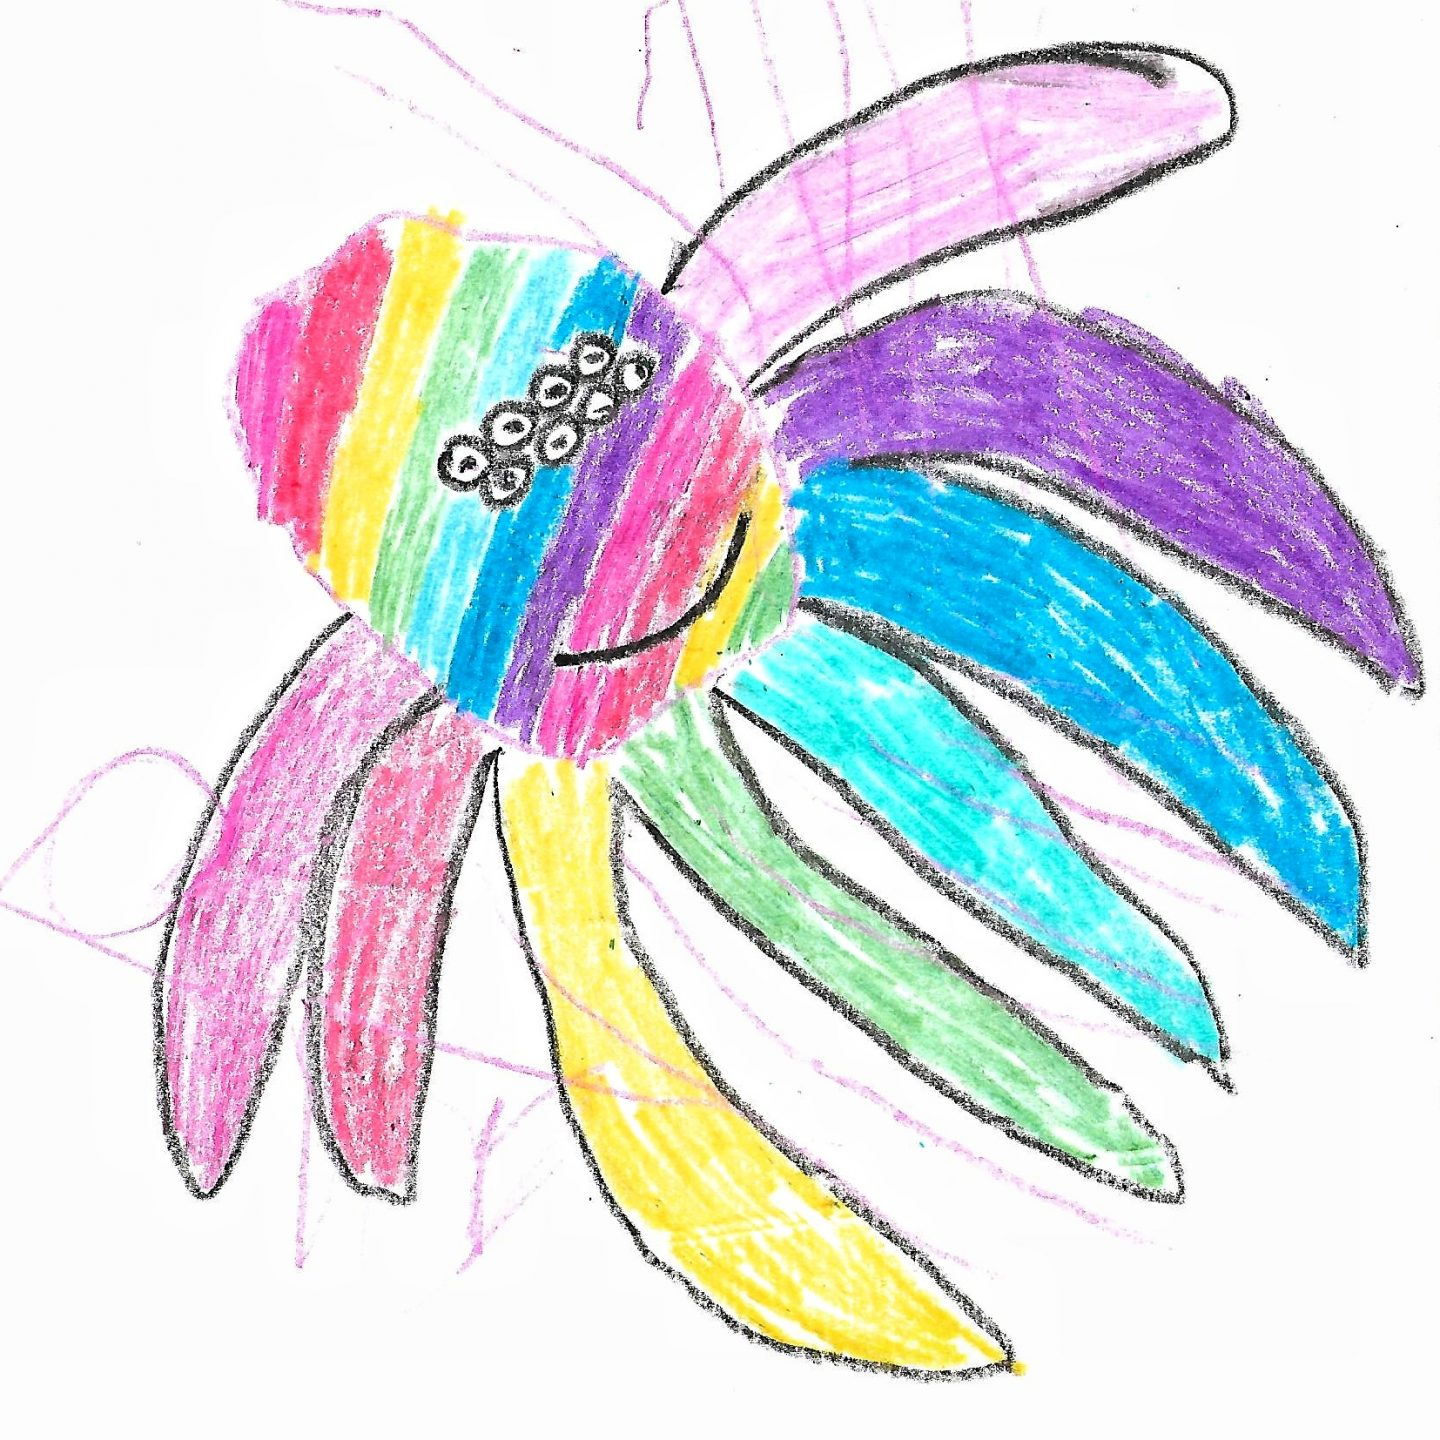 A child's drawing of a rainbow spider - the petplan dream pet campaign for pet insurance